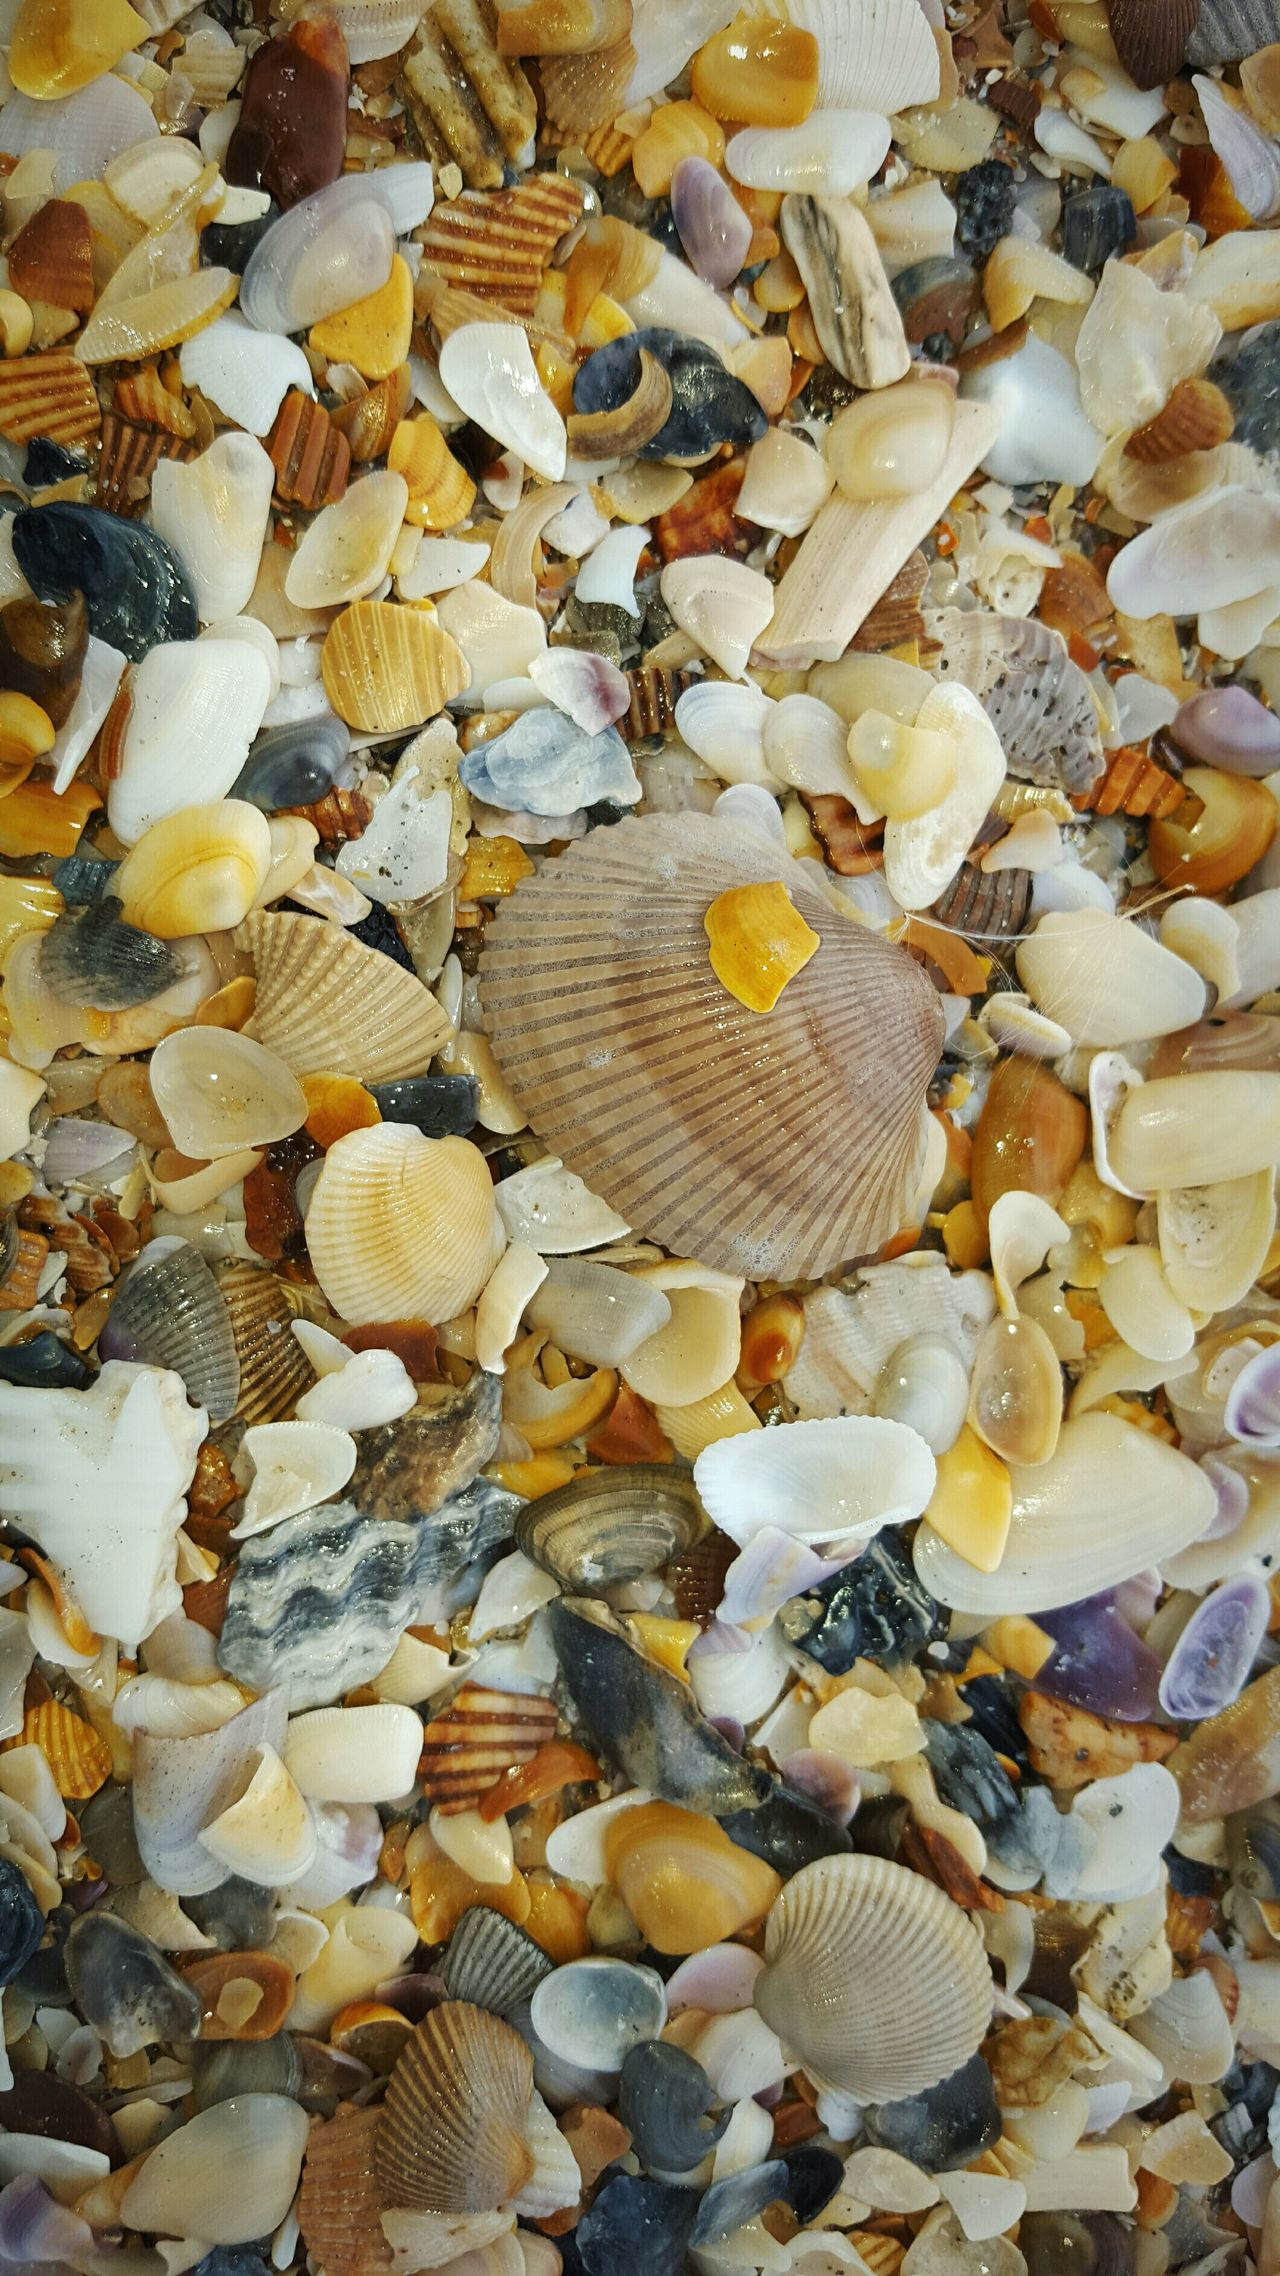 Large Group Of Objects Close-up Outdoors Shells Shellsheddyphotography Beach Oceanside Backgrounds Nature